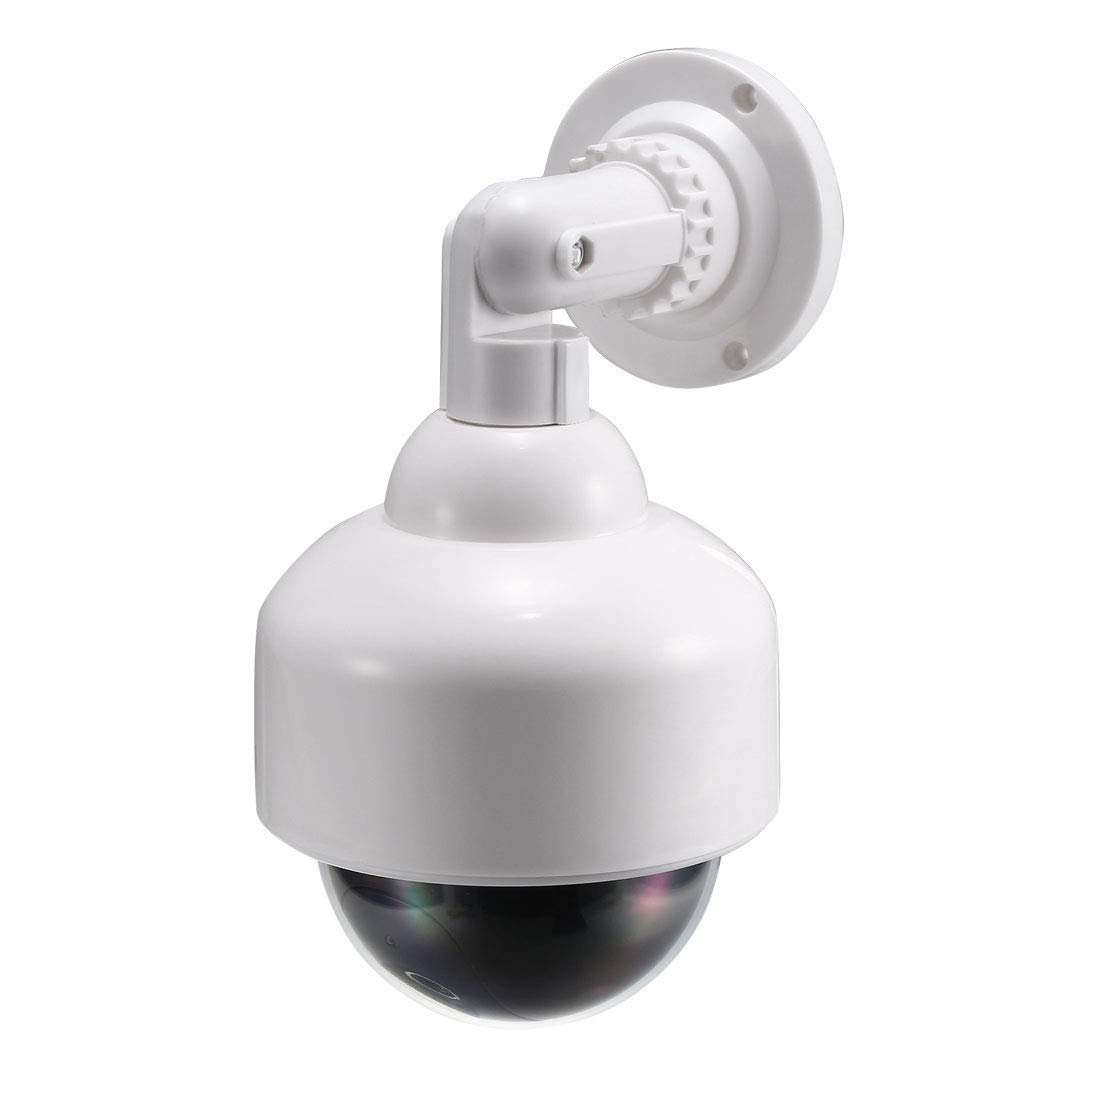 ZCHXD Fake Security Camera Dummy Dome CCTV with Blinking Red LED Warning Alert Light, Sticker for Home Outdoor Indoor White